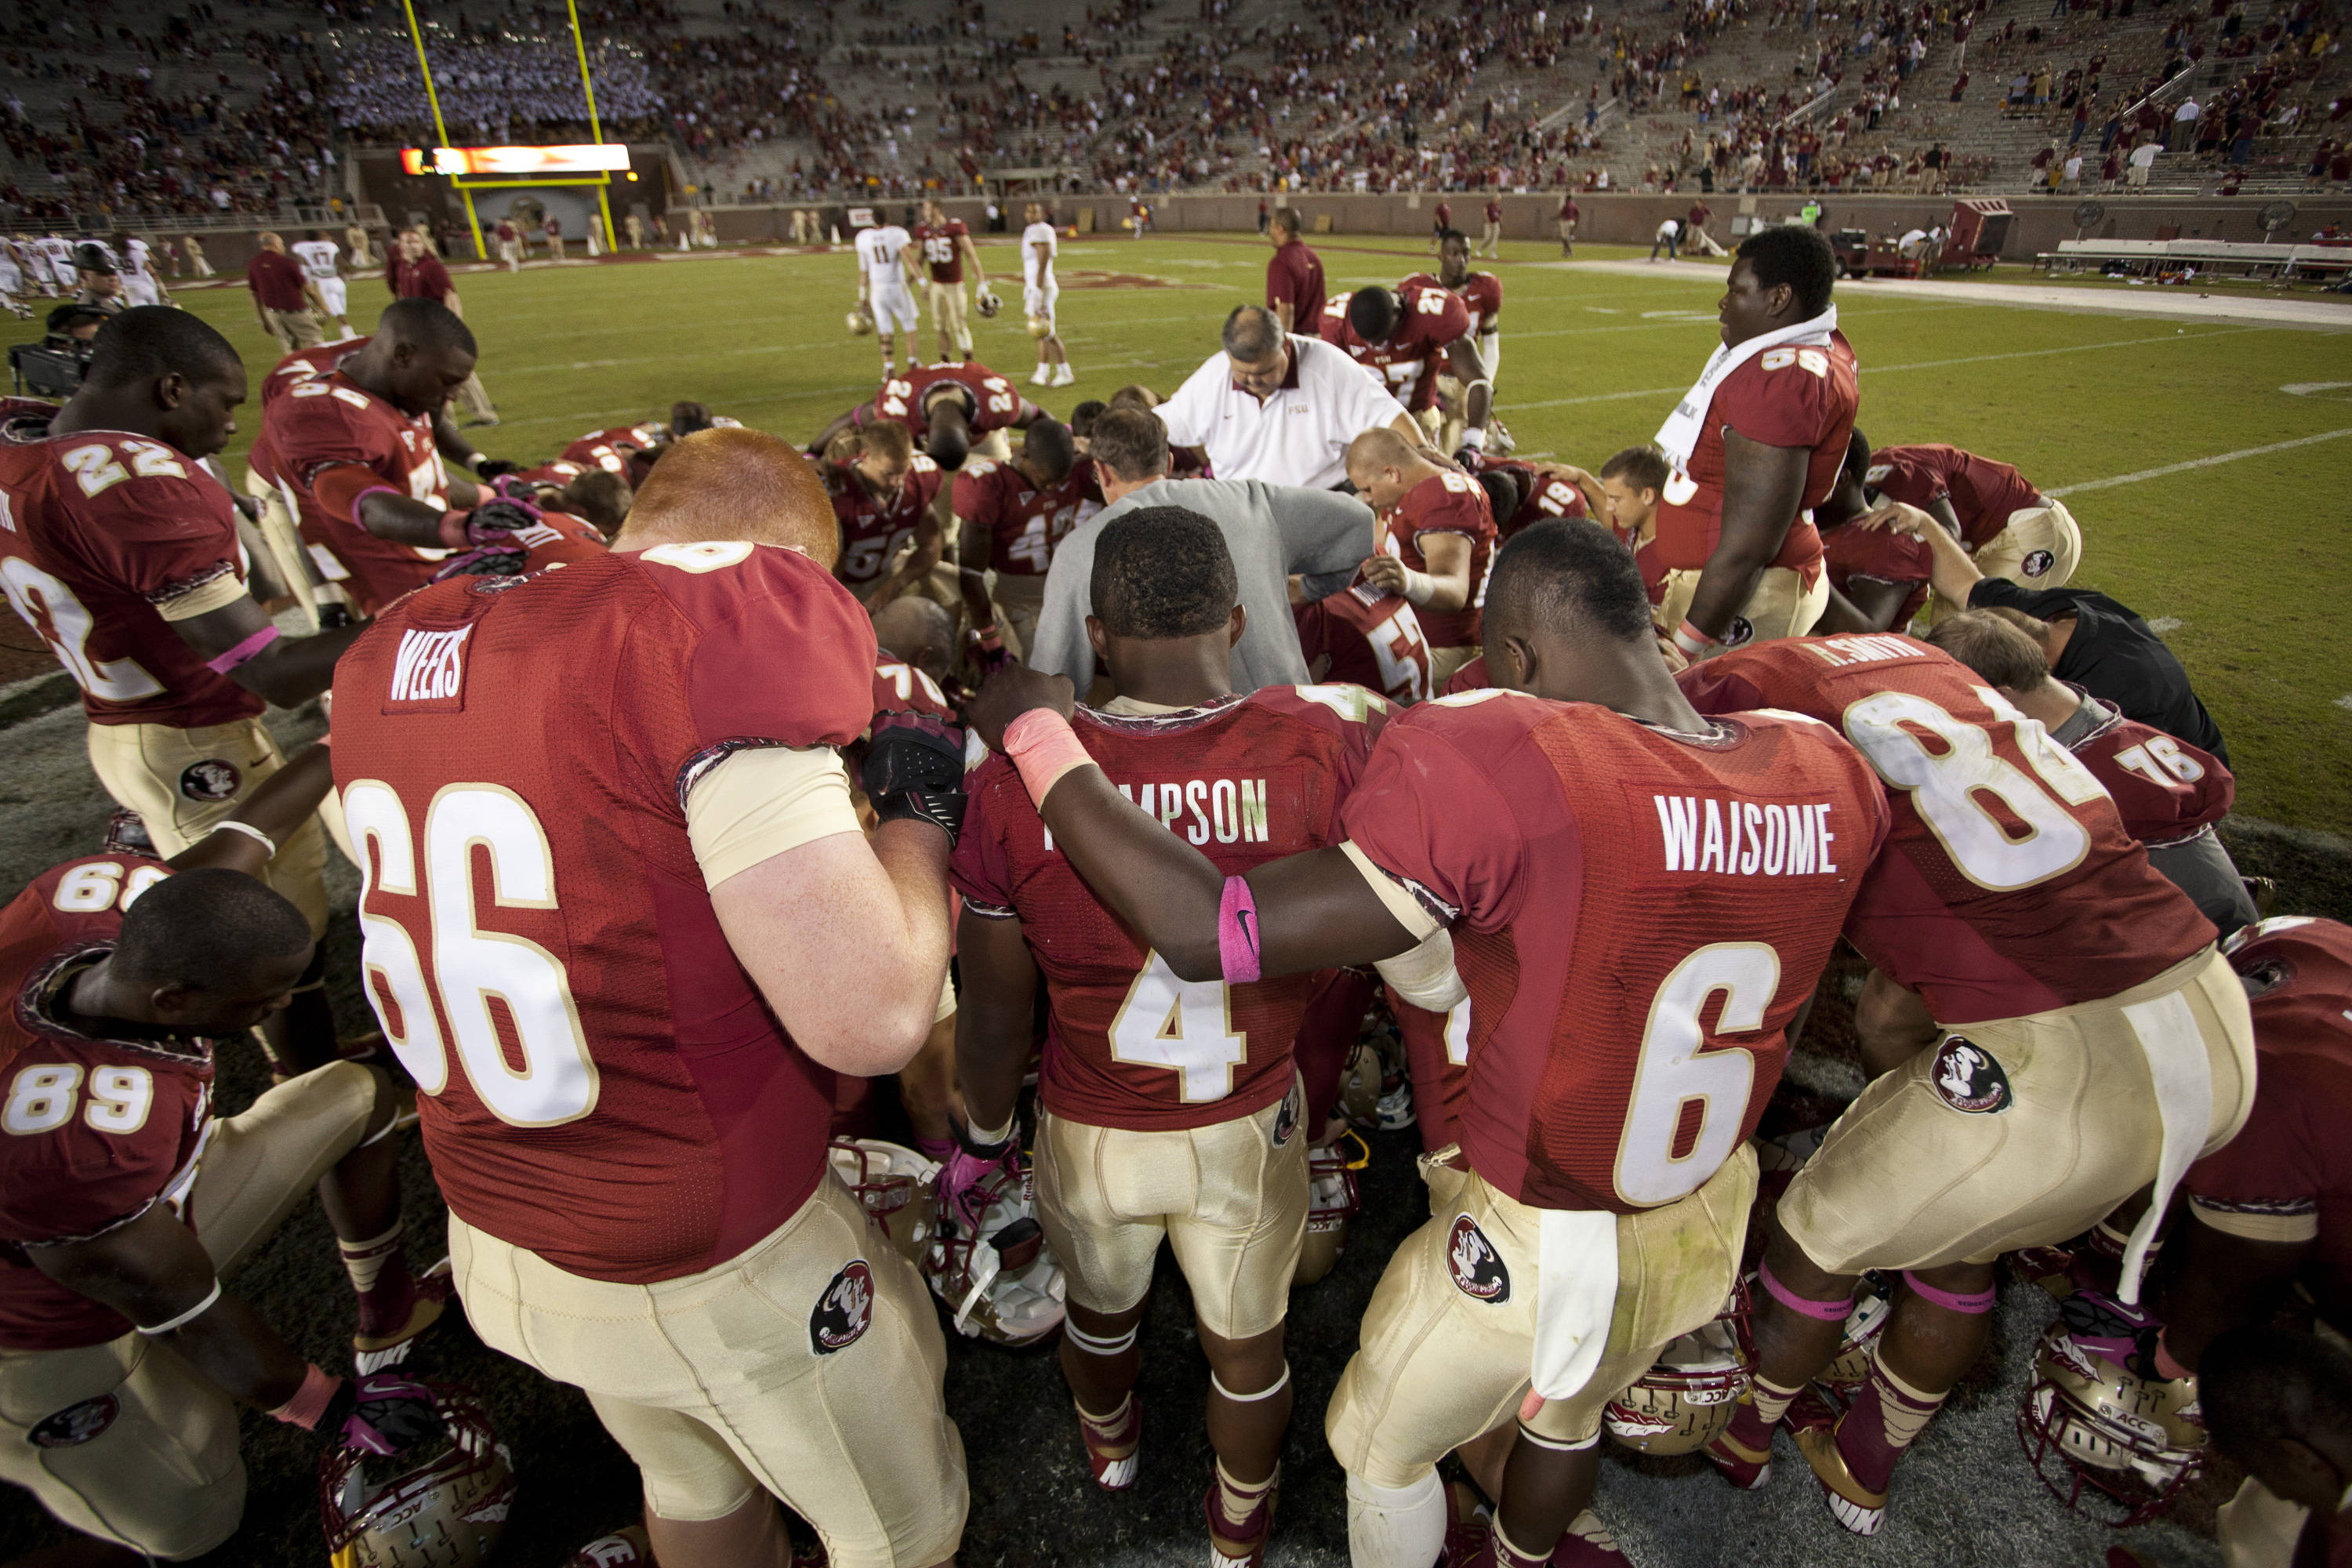 Players take a moment of quiet after the FSU vs Boston College football game on October 13, 2012 in Tallahassee, Fla.